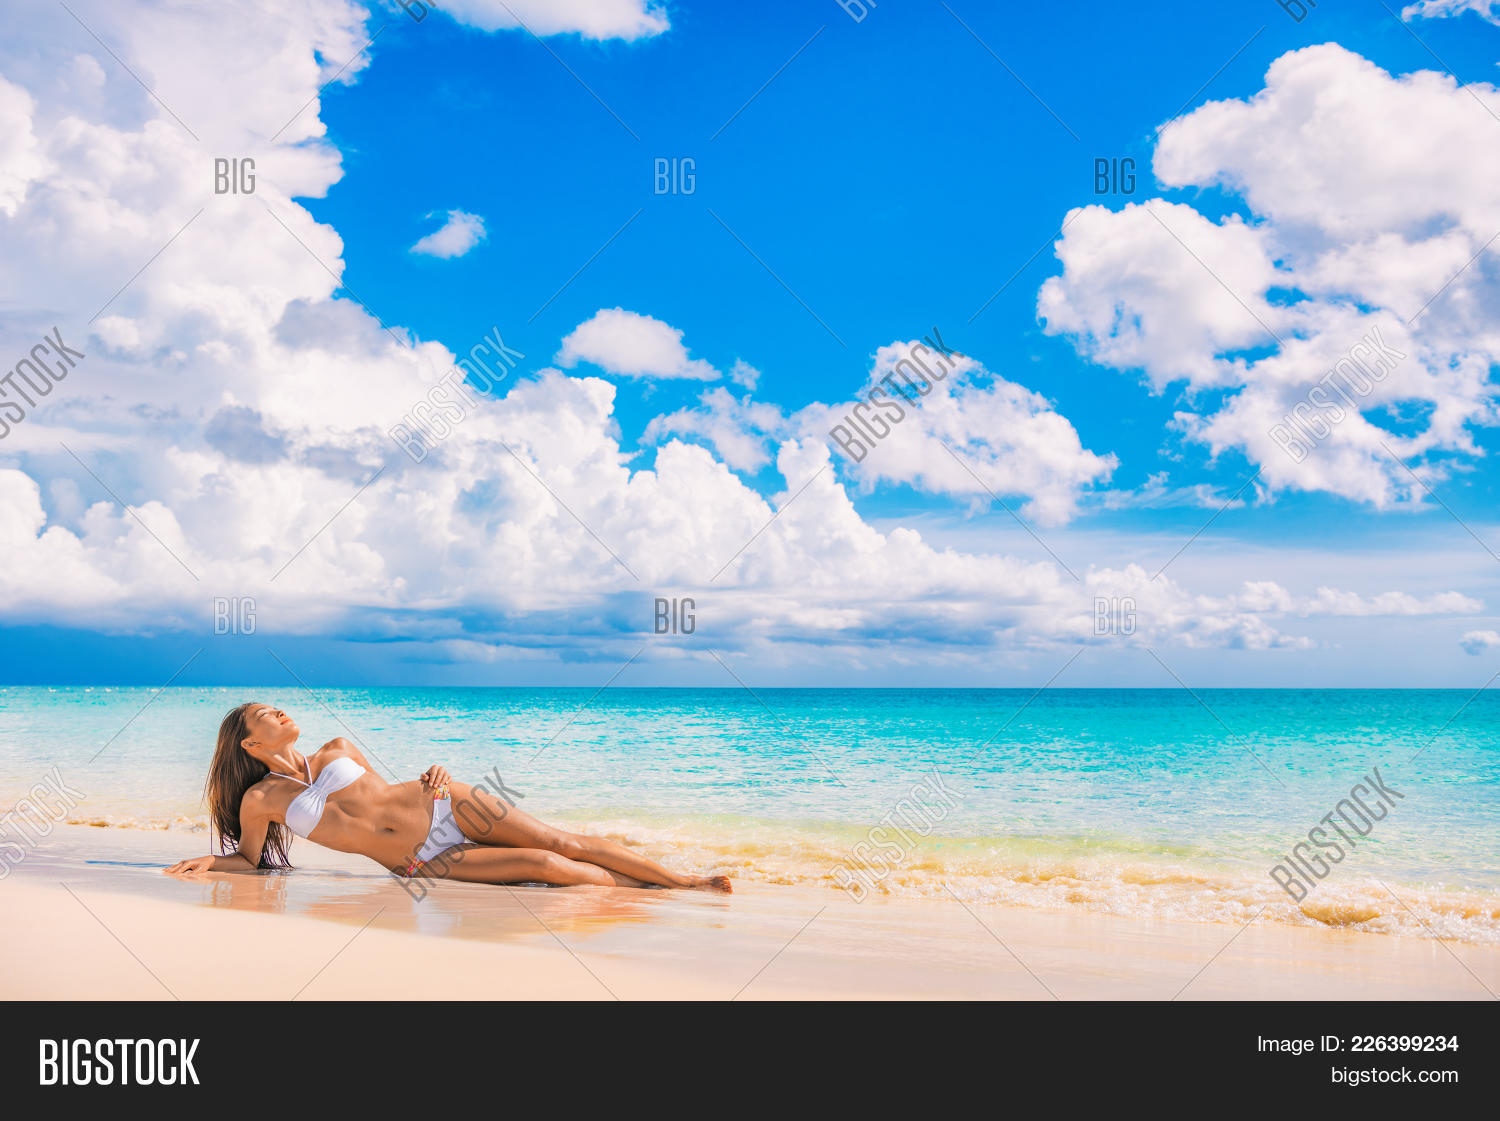 Beach travel vacation image photo free trial bigstock for Travel swimsuit